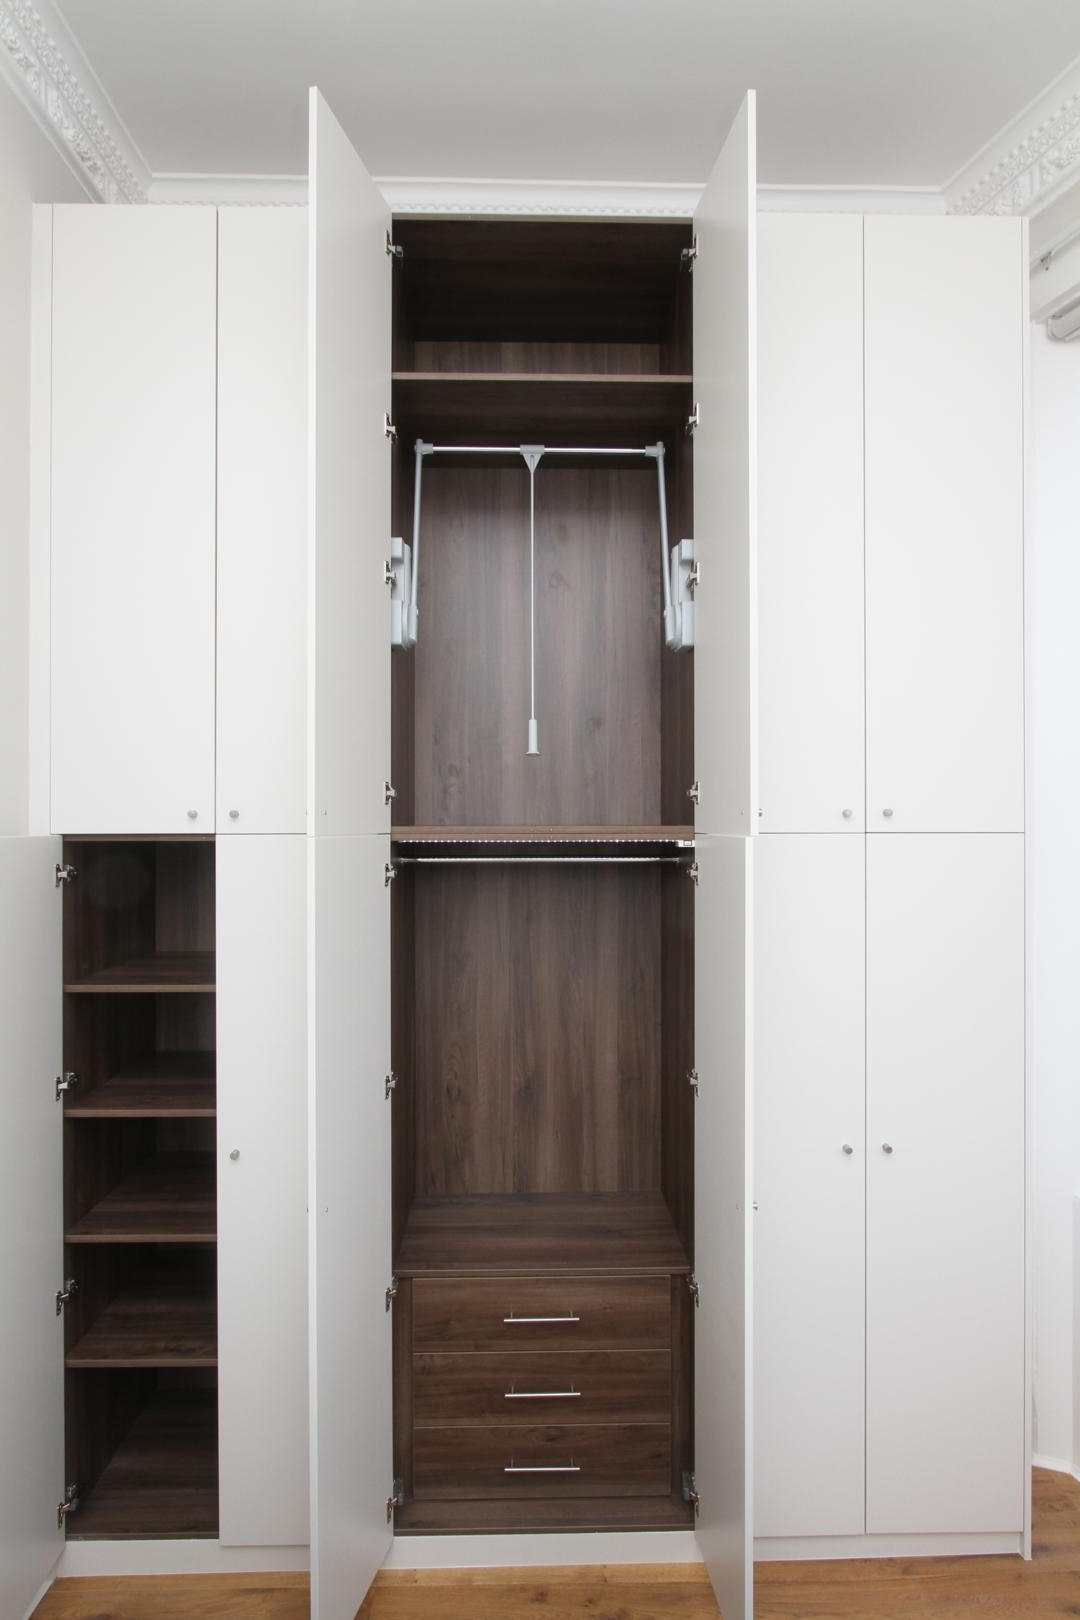 Tall Wardrobes Regarding Famous Fitted Wardrobes – Fitted And Fancyempatika (View 7 of 15)